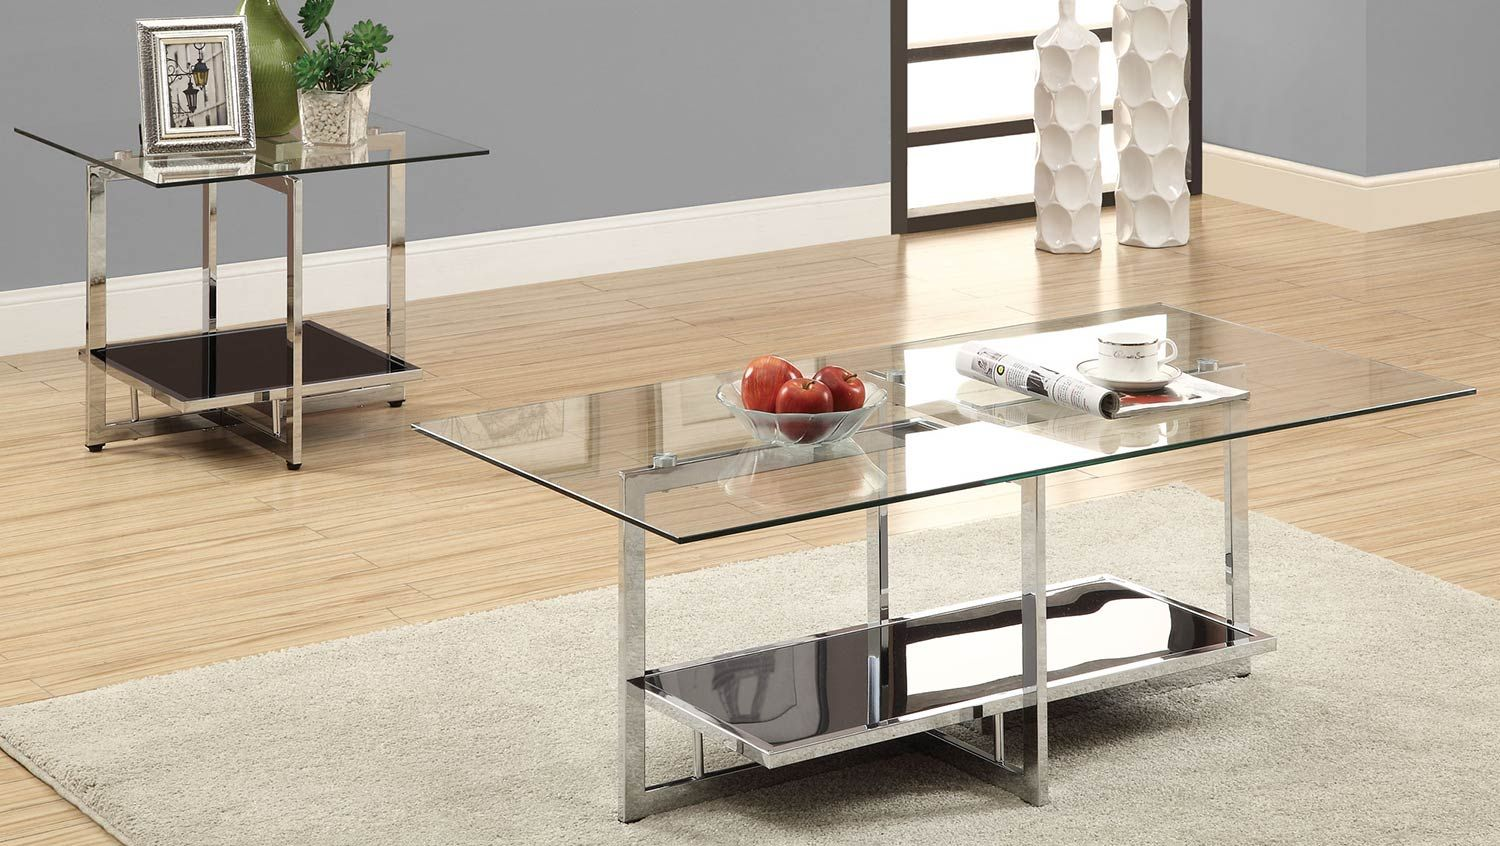 Coaster 70163 Occasional Set Coffee Table Home Coffee Tables Contemporary Coffee Table [ 846 x 1500 Pixel ]